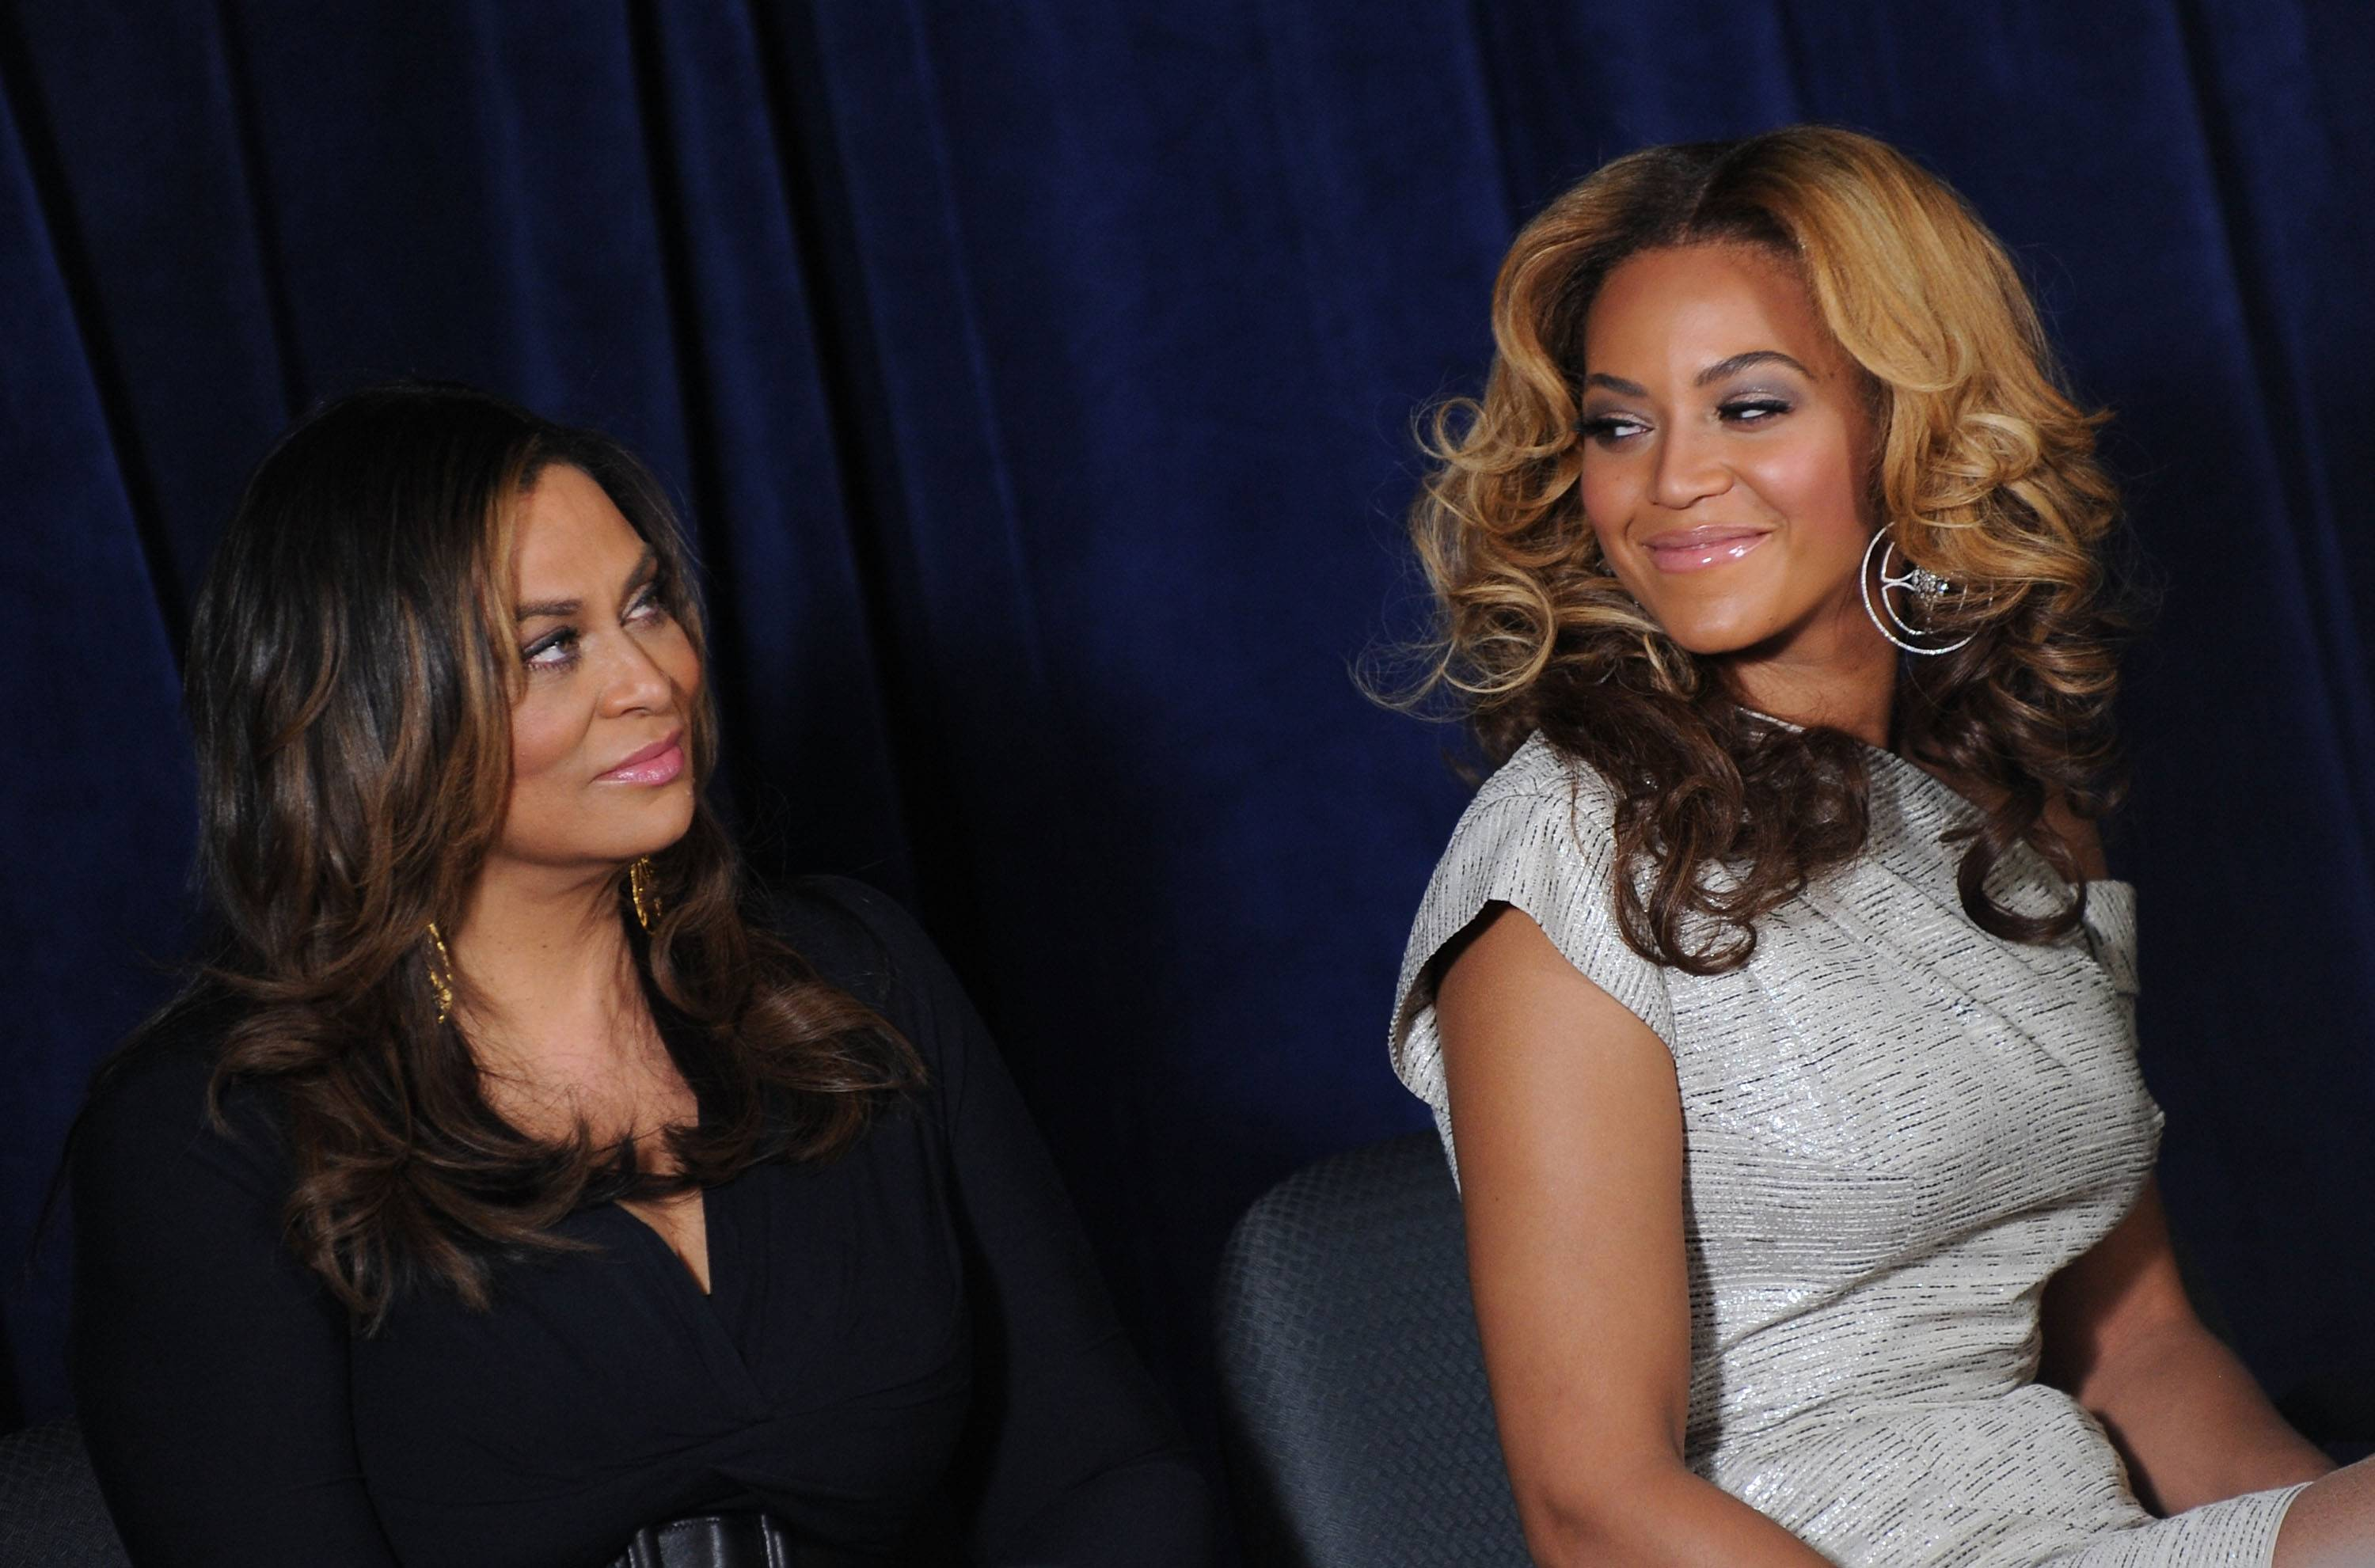 """Tina Knowles andBeyonc? - Not many women can say that their mom is one of their best friends, but these two have a great relationship. Beyonc? and her mom, aka """"Ms. Tina,"""" share beauty, talent, friendship and love.  (Photo: Jason Kempin/Getty Images)"""